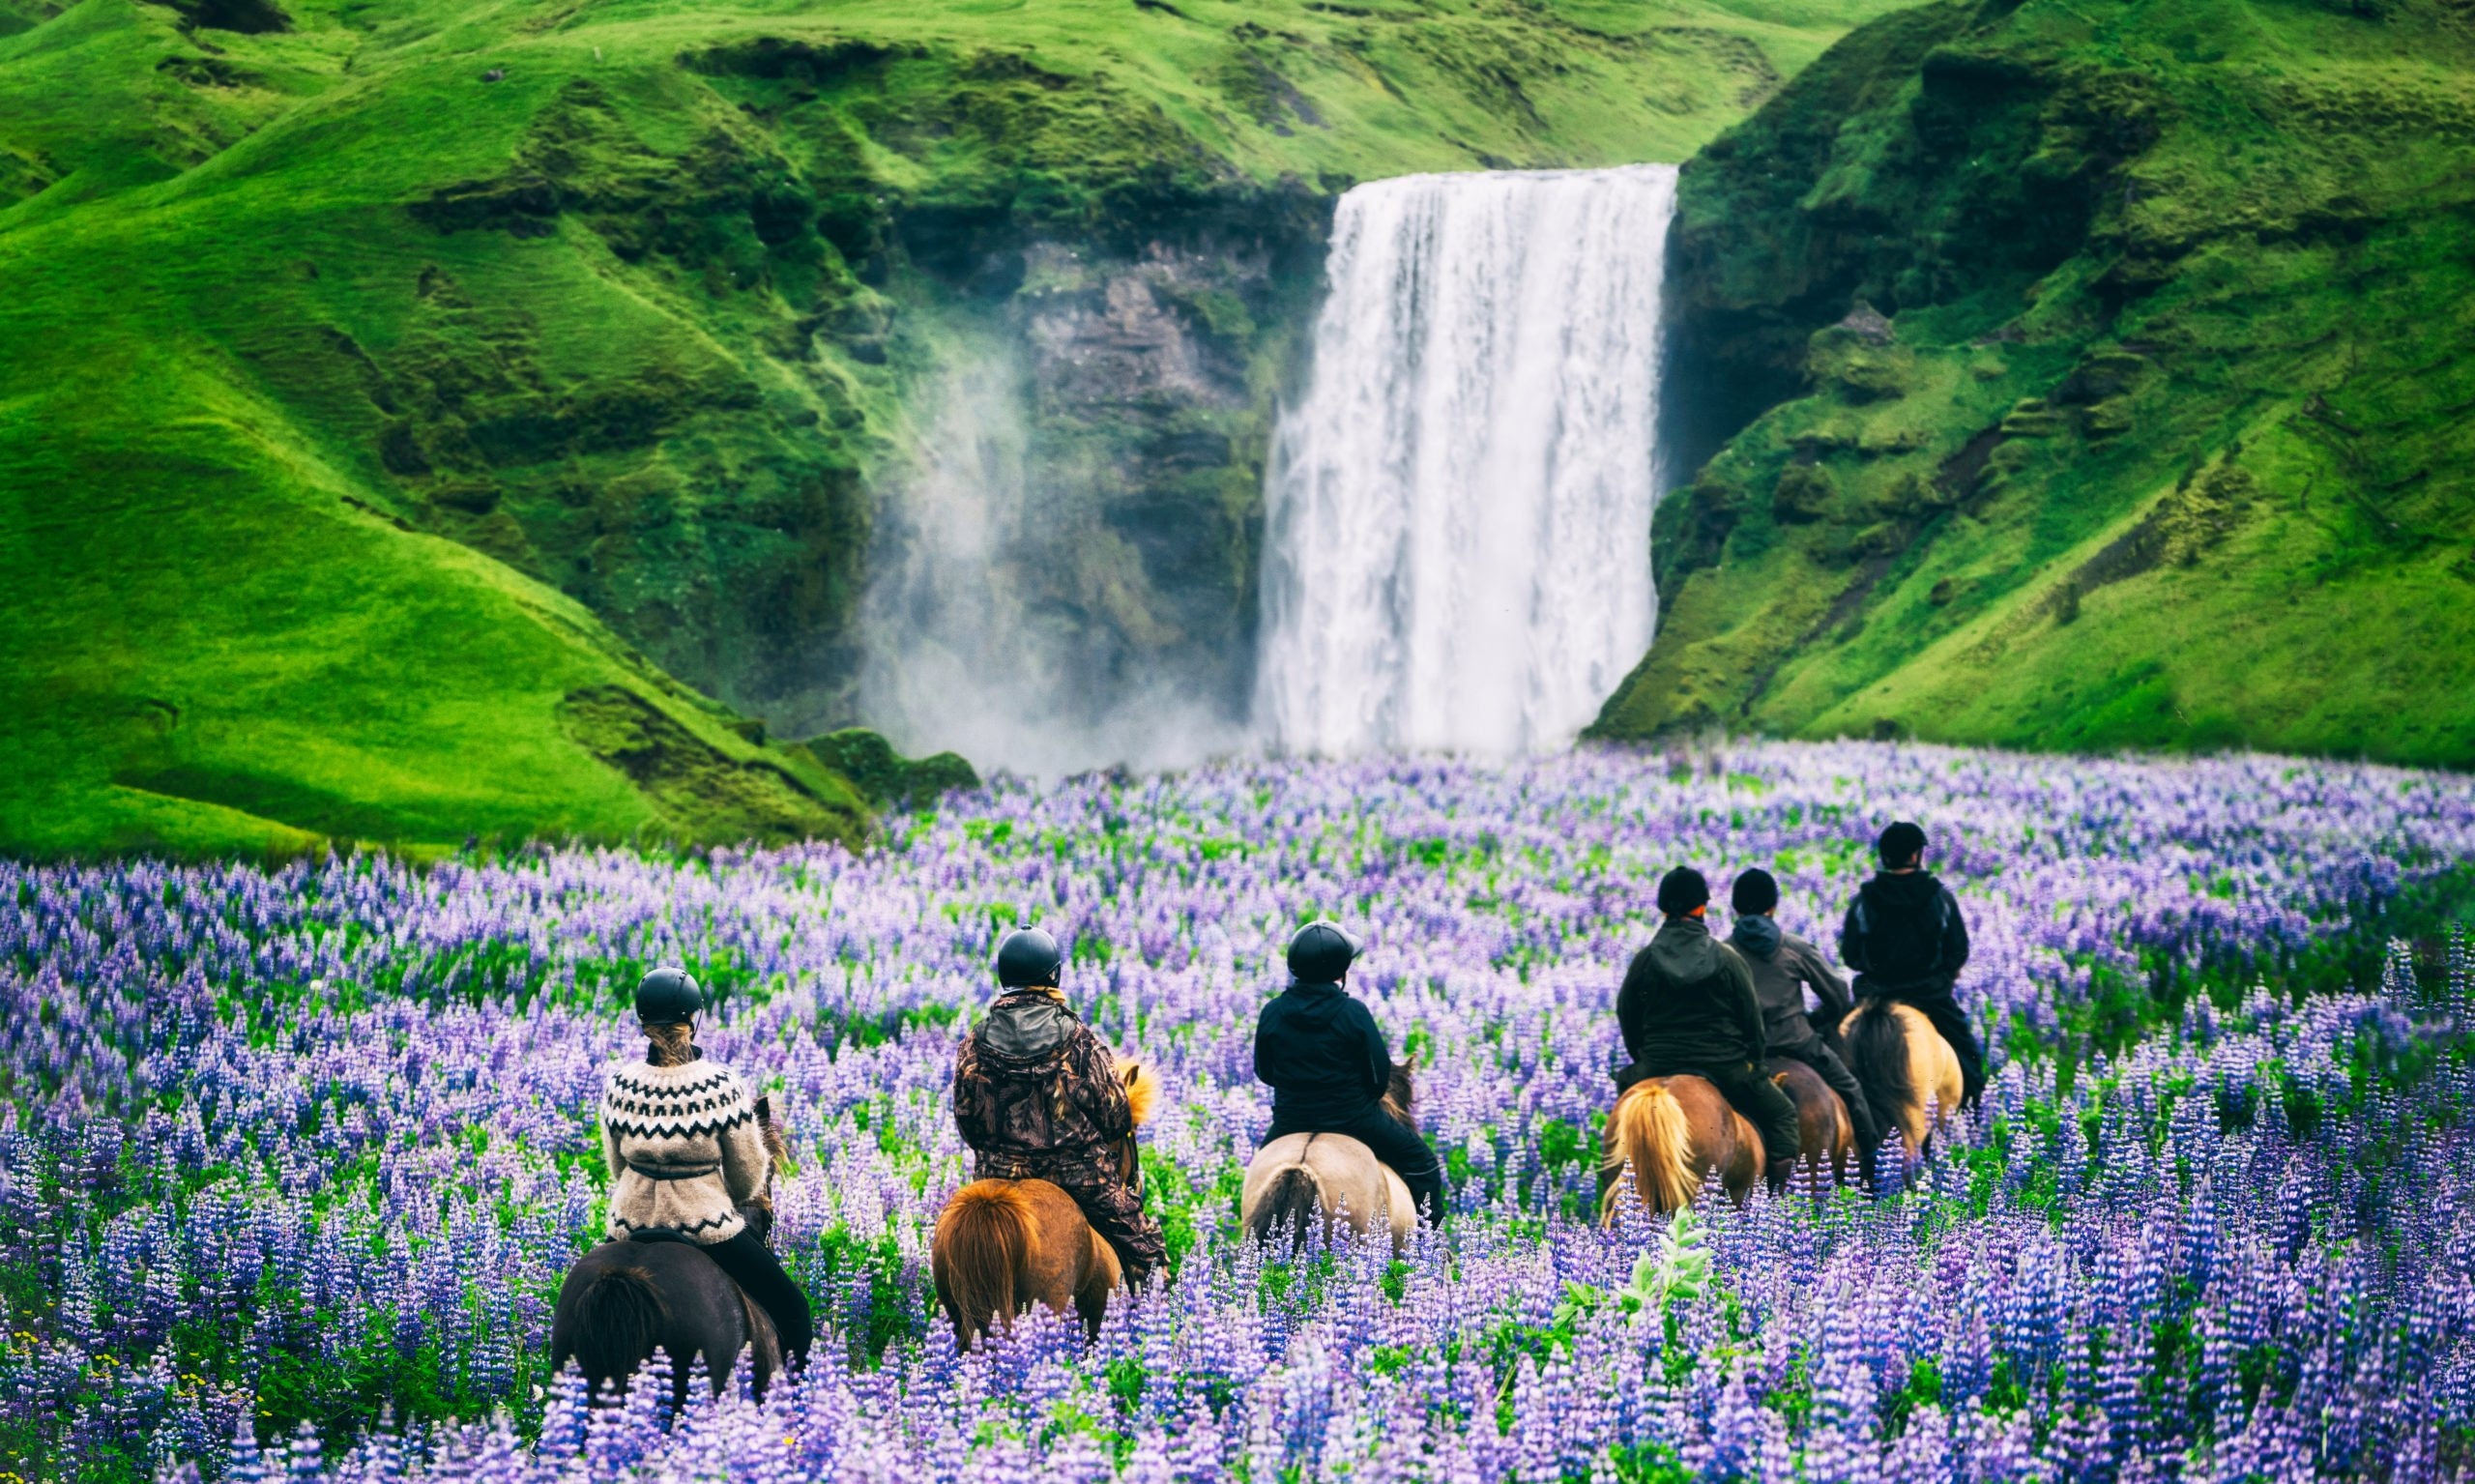 Enjoy Horse Riding At The Majestic Skogafoss Waterfall In Our Golden Circle & Horse Riding Tour